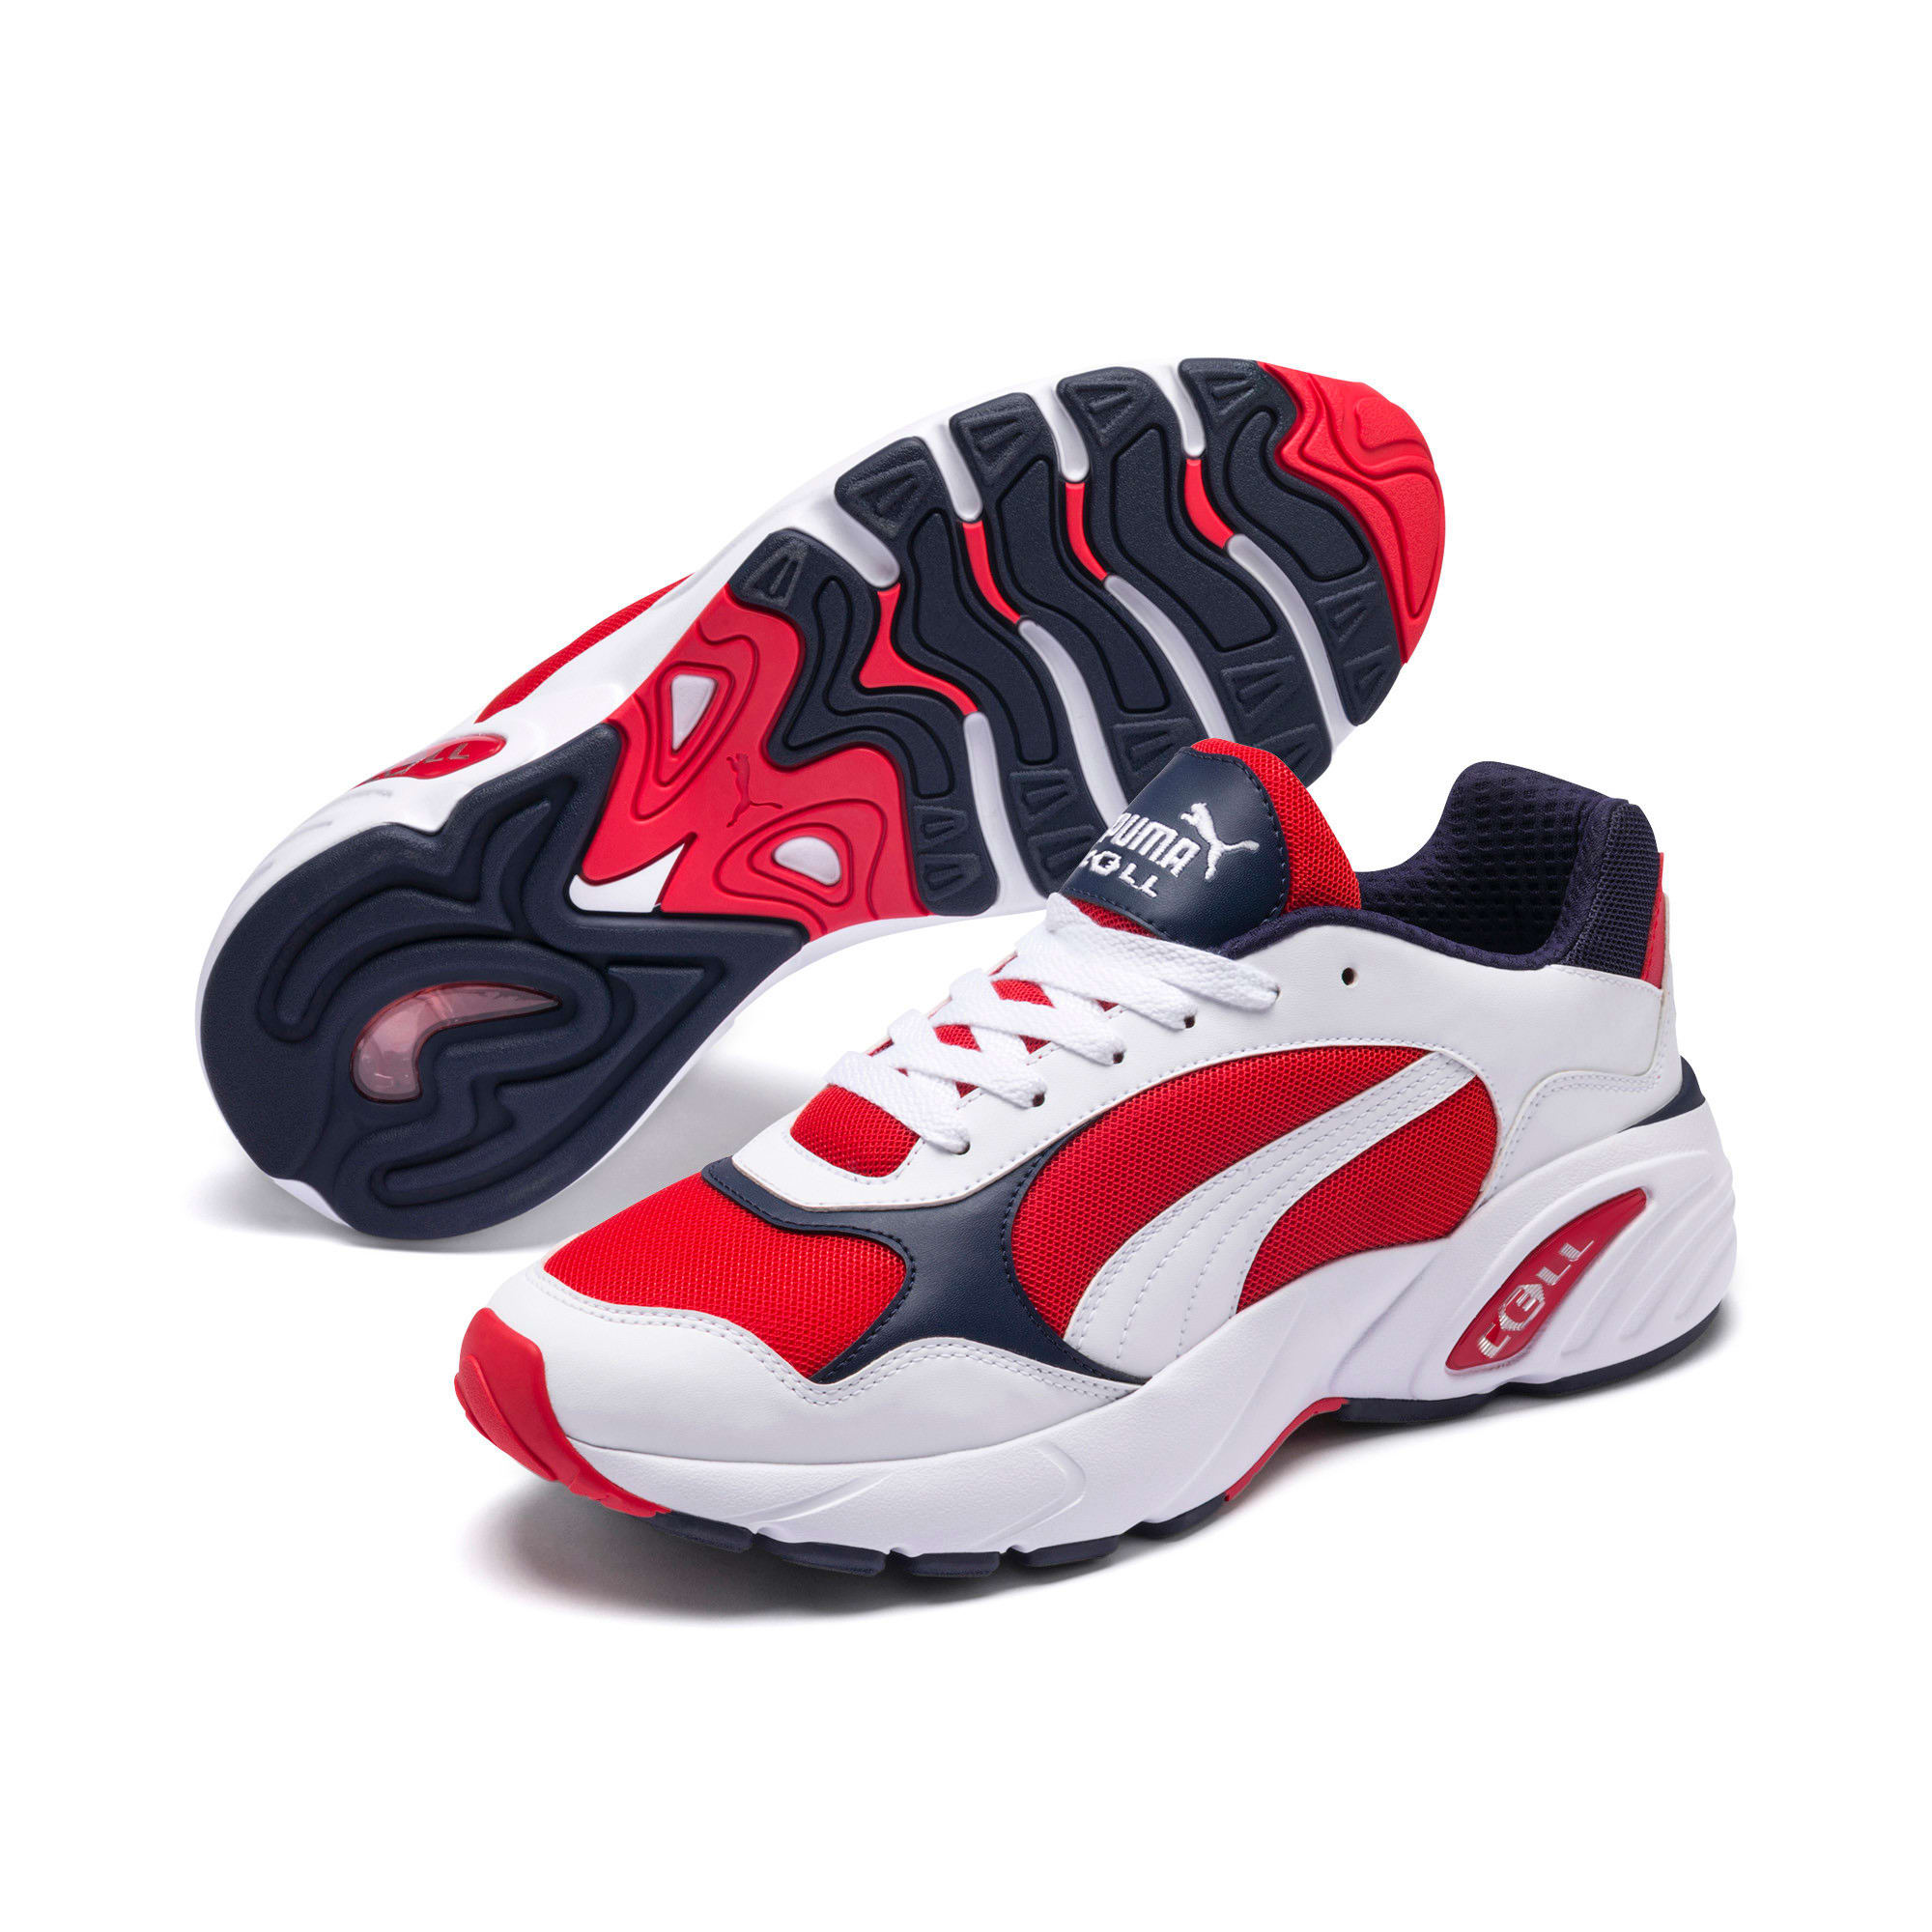 Thumbnail 2 of CELL Viper Sneakers, Puma White-High Risk Red, medium